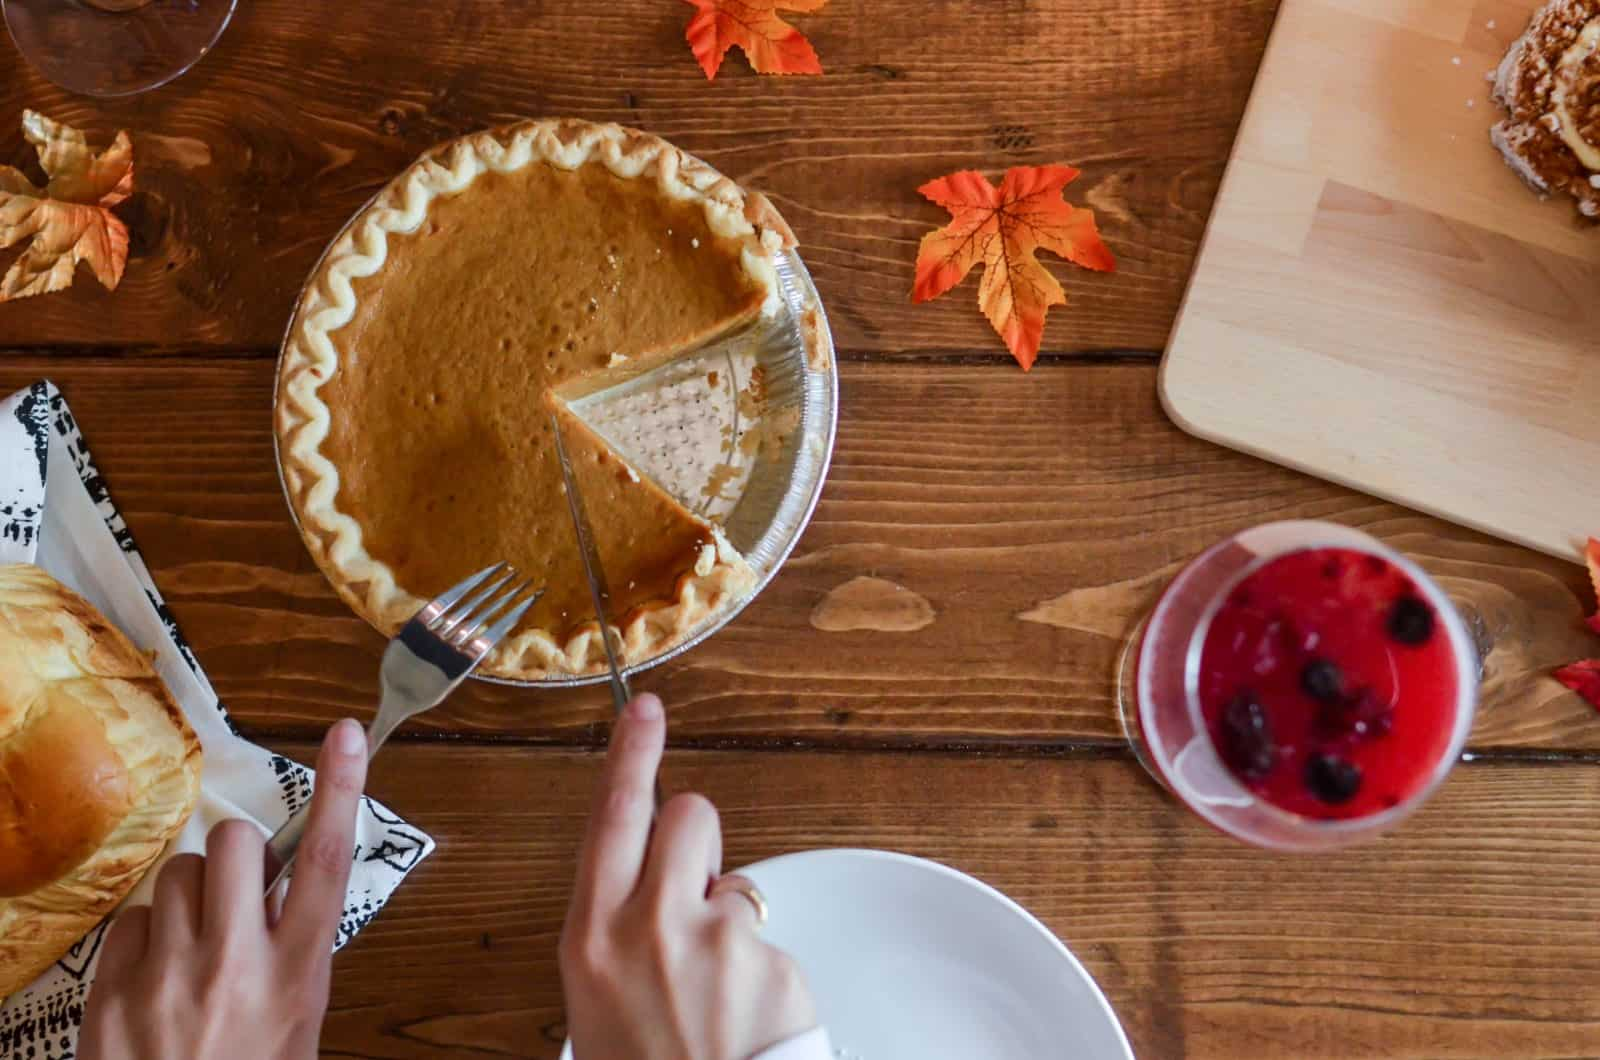 Thanksgiving traditions like pumpkin pie for dessert